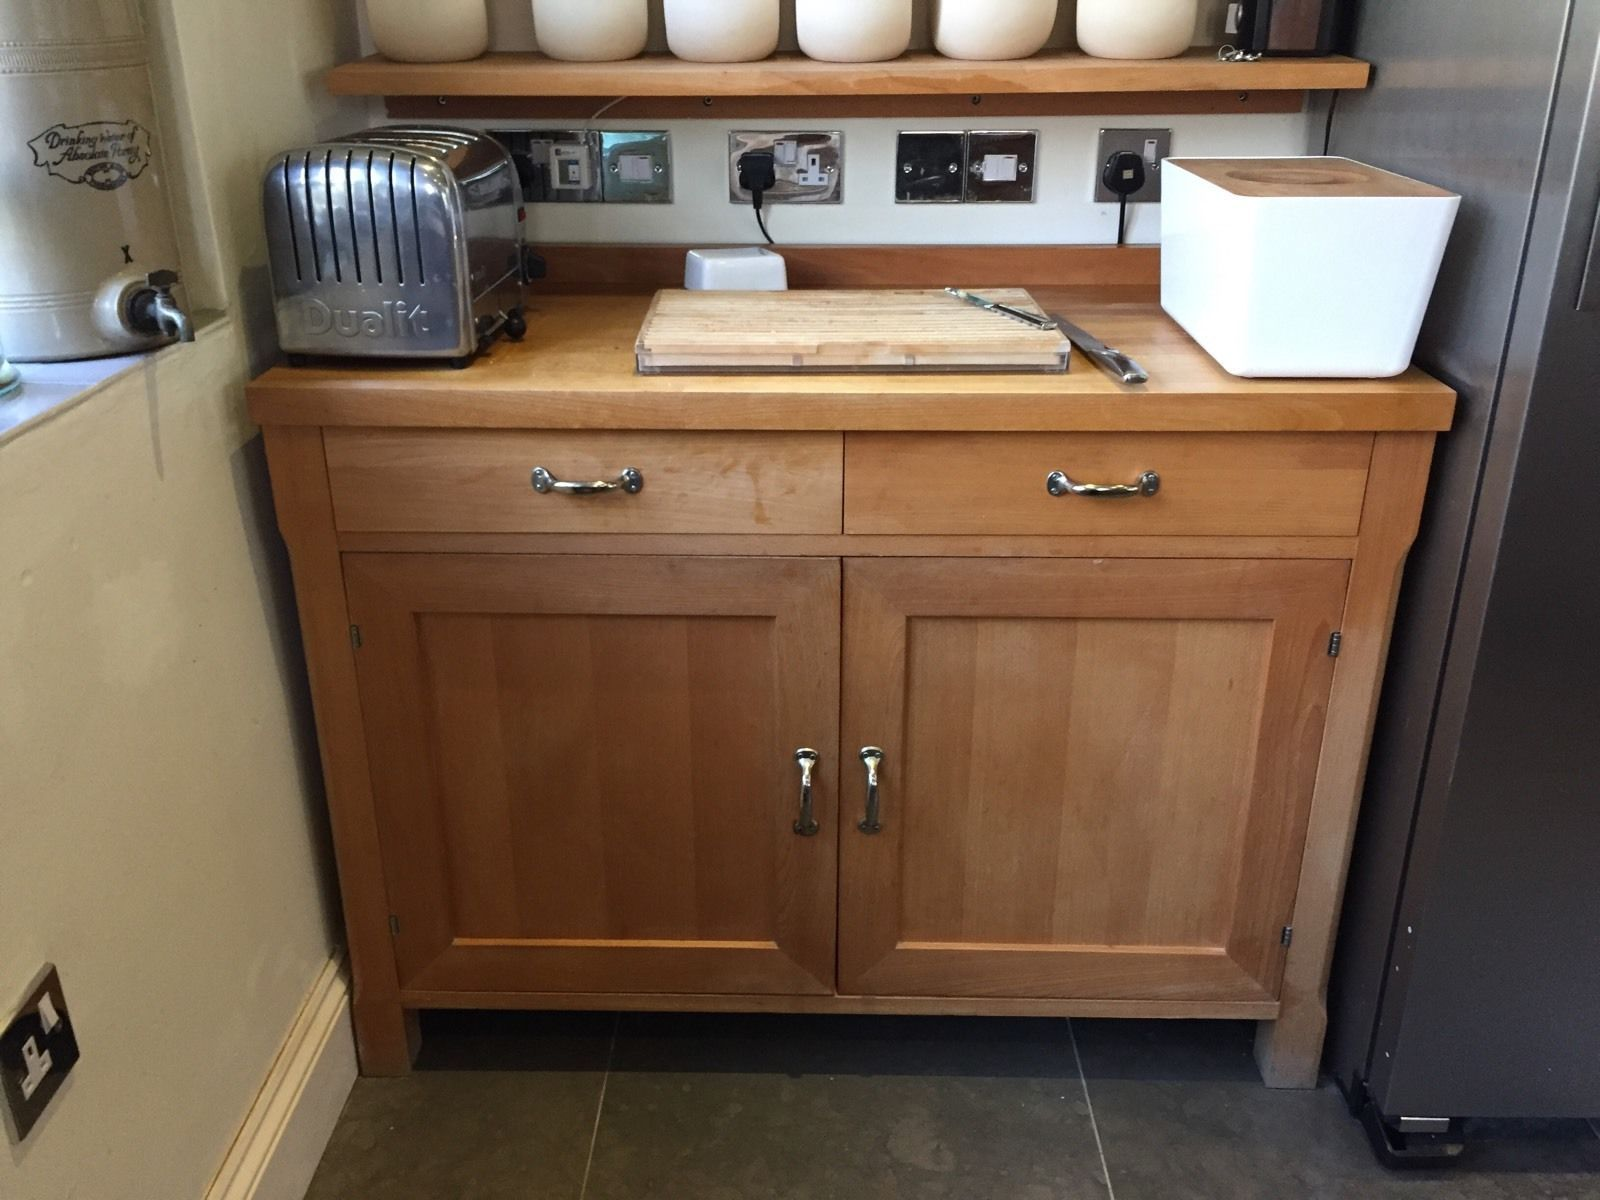 Habitat Olivia Oliva Complete Kitchen USED But Good Condition in Home,  Furniture & DIY,